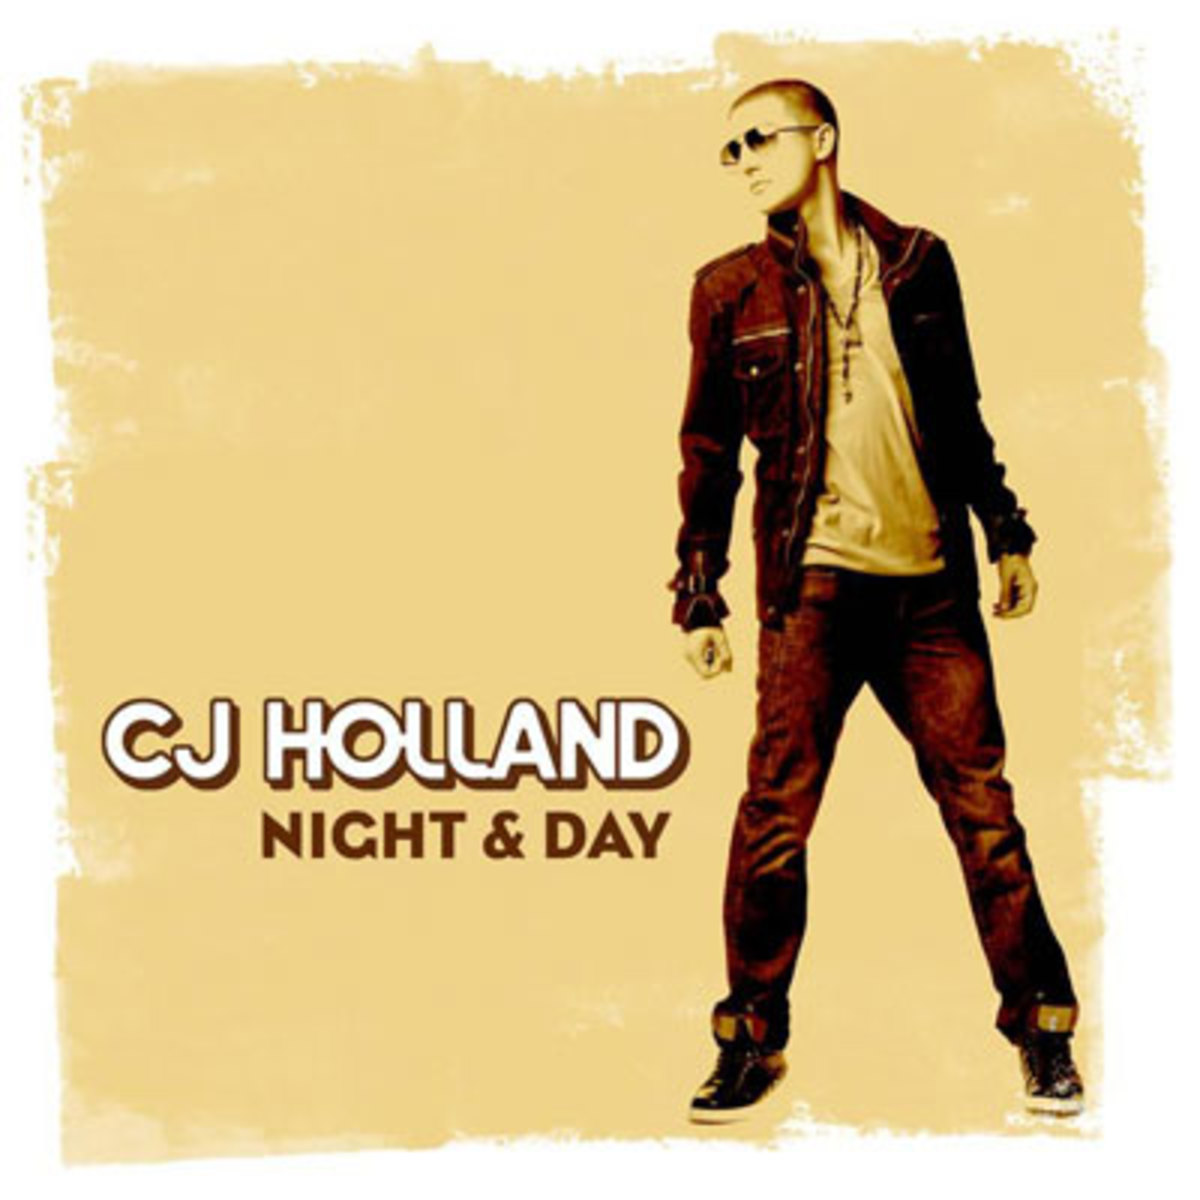 cj-holland-night-and-day.jpg